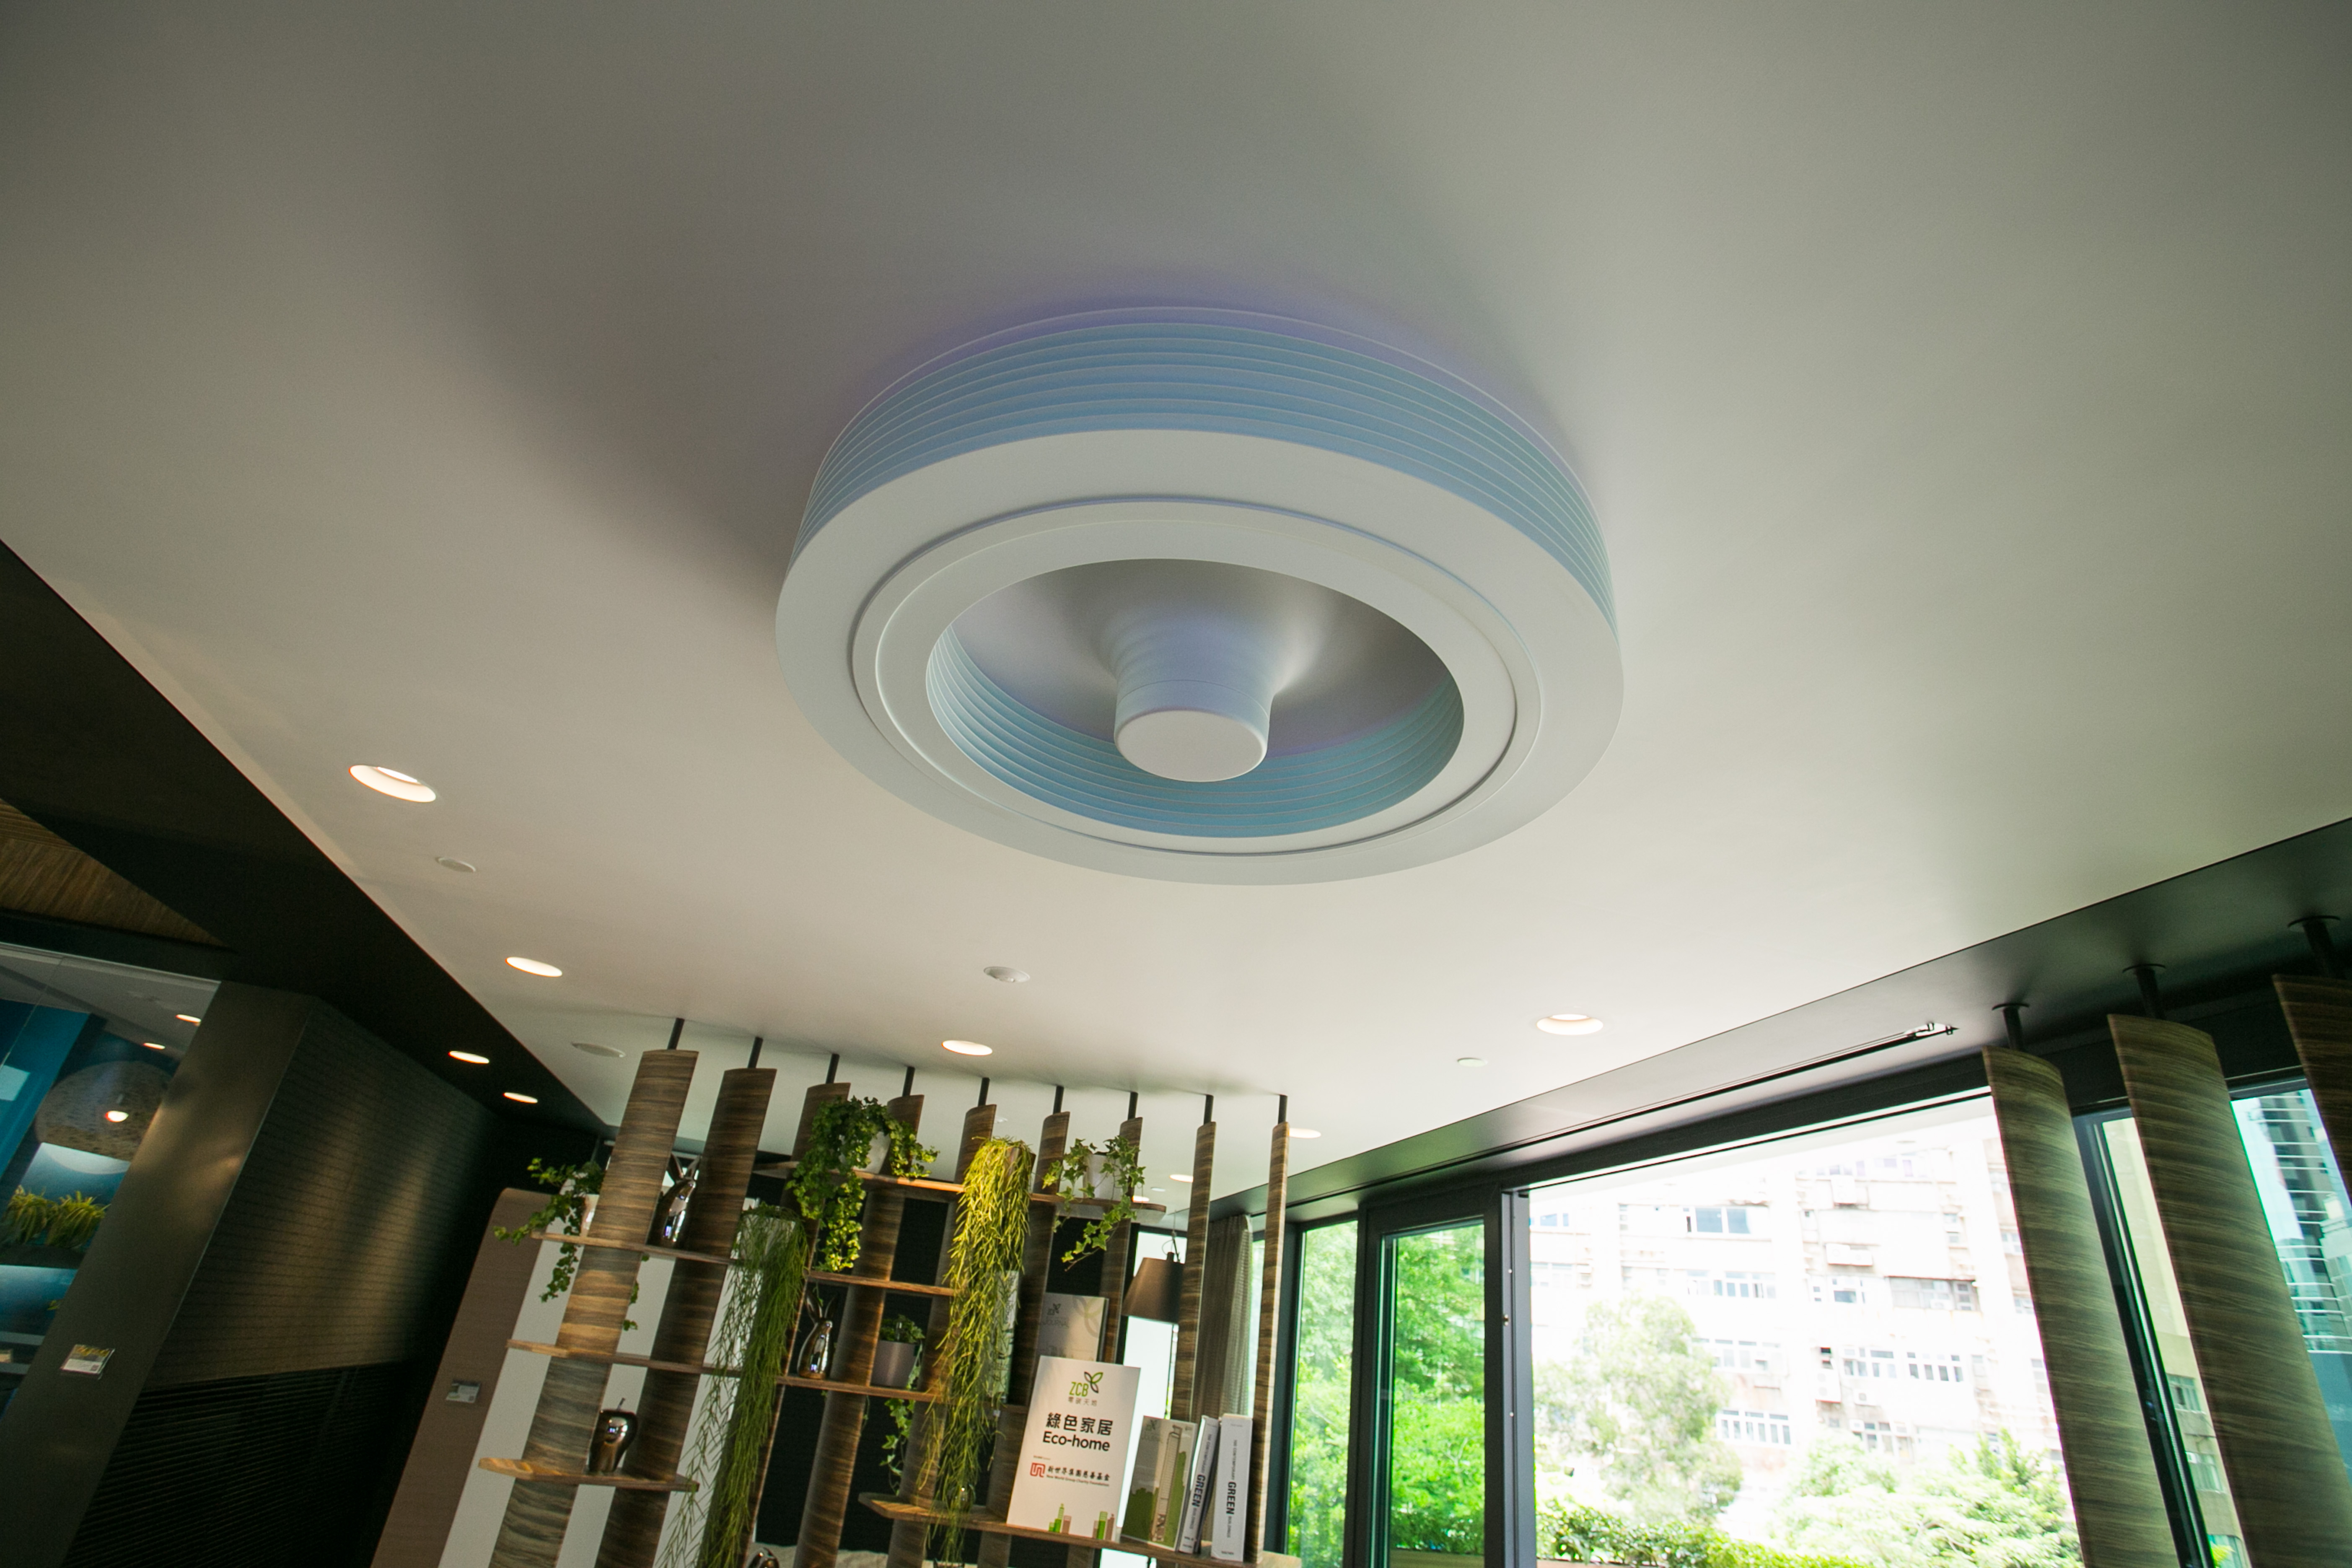 dyson bladeless ceiling fan photo - 8